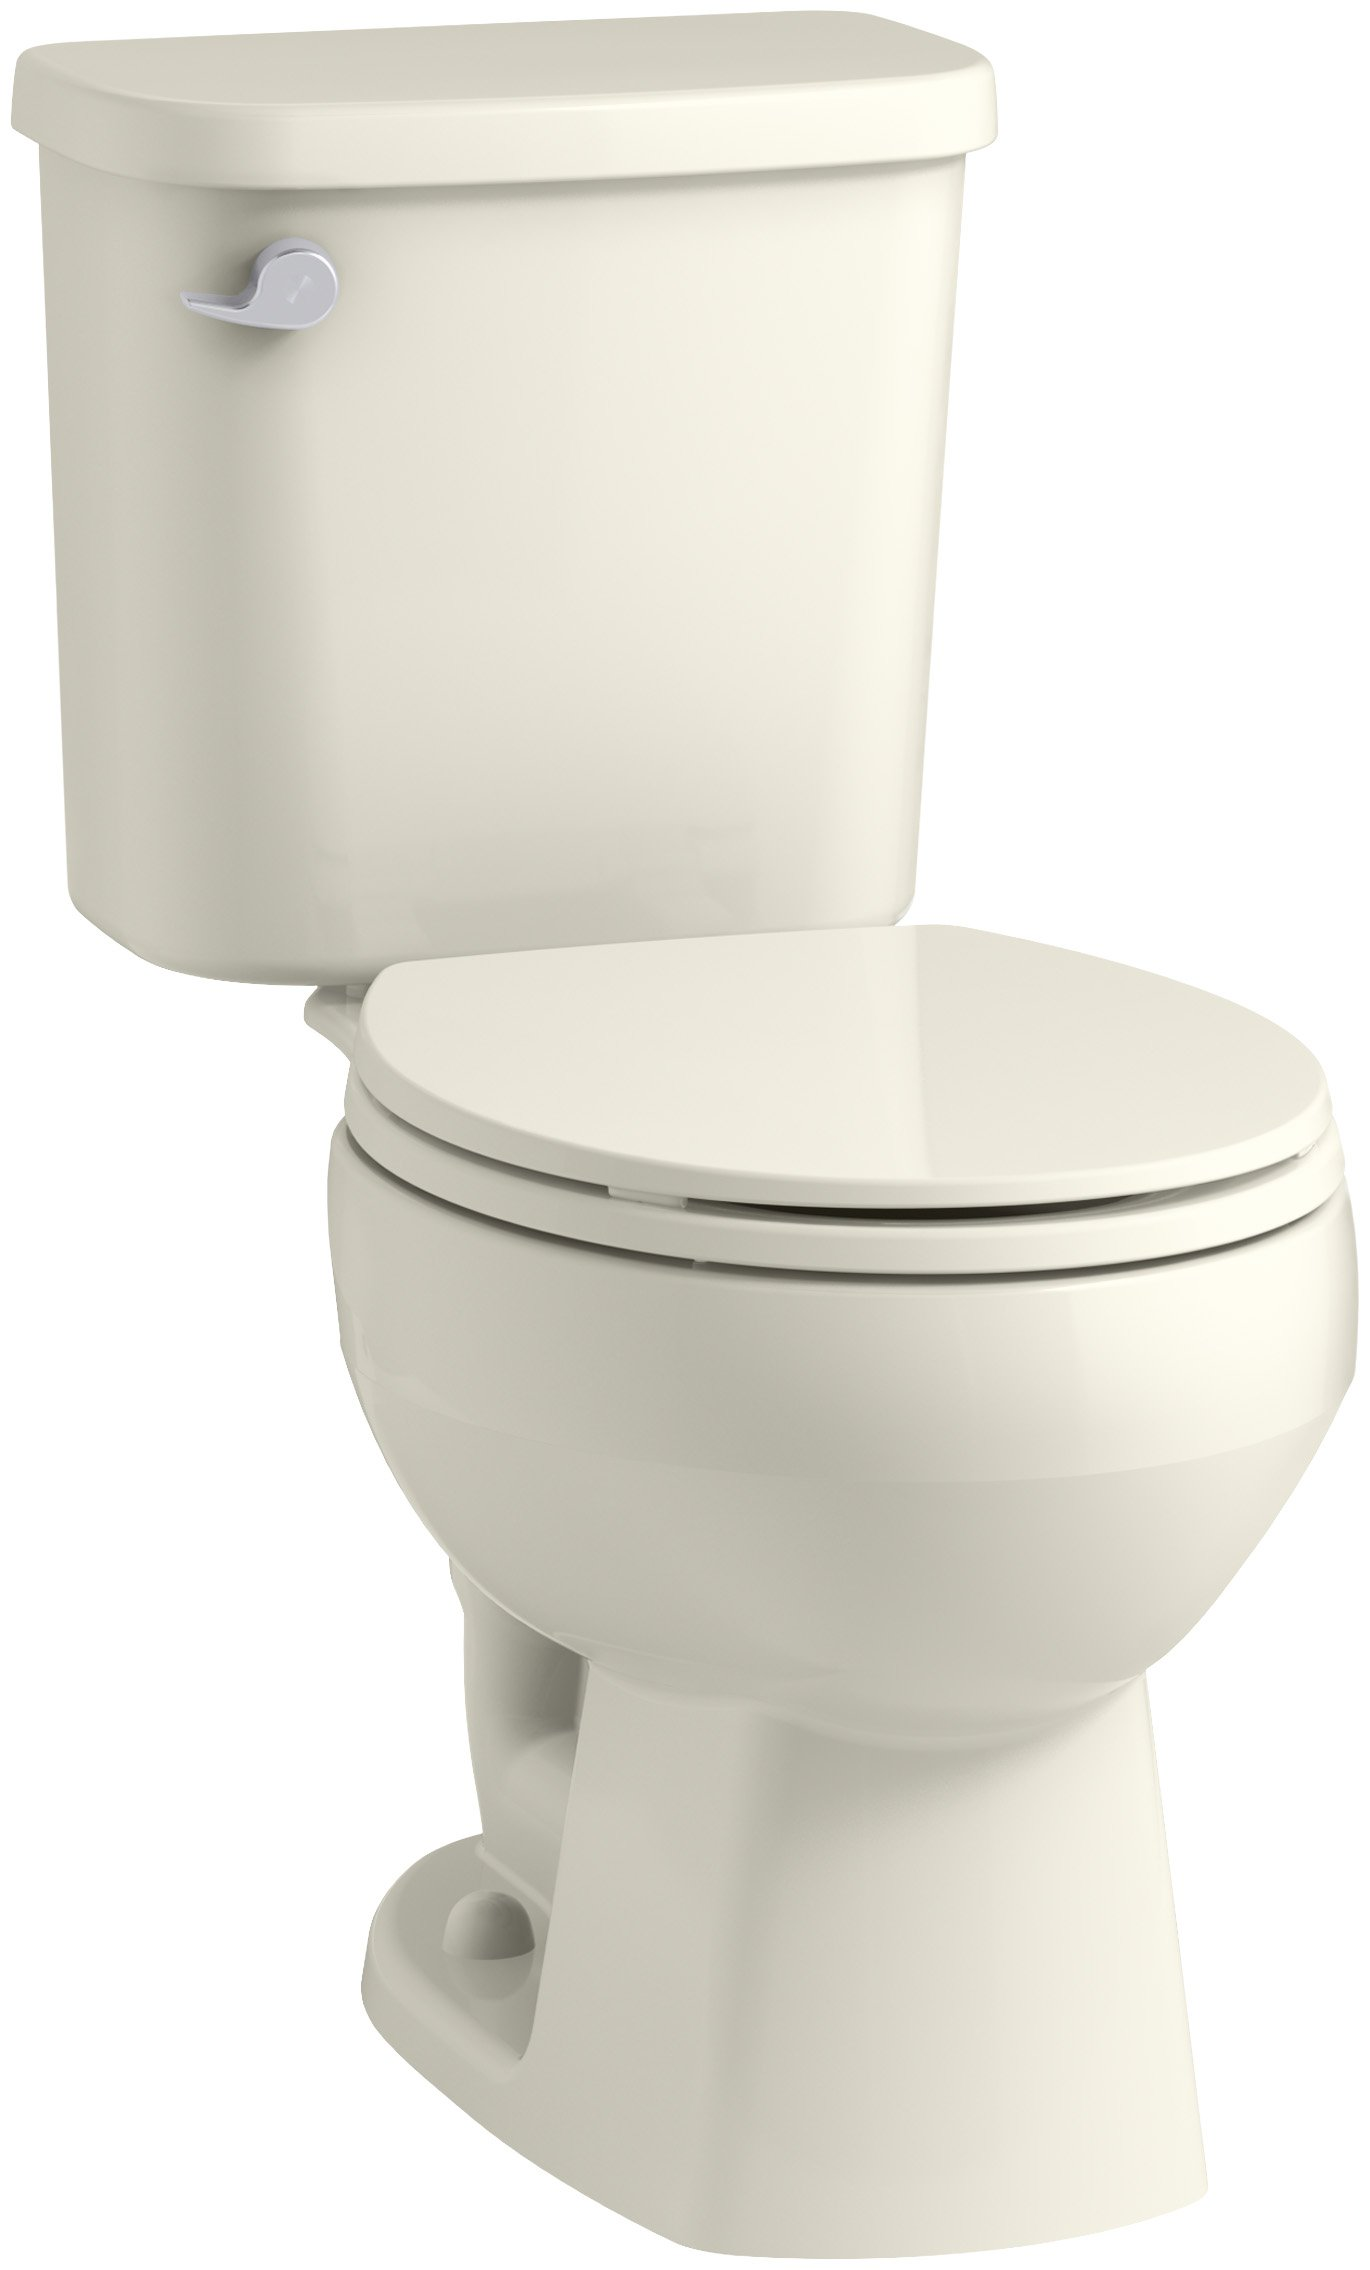 Sterling 403080-96 Windham 12-Inch Rough-In Round Front Toilet with Pro Force Technology and Left-Hand Trip Lever, Biscuit